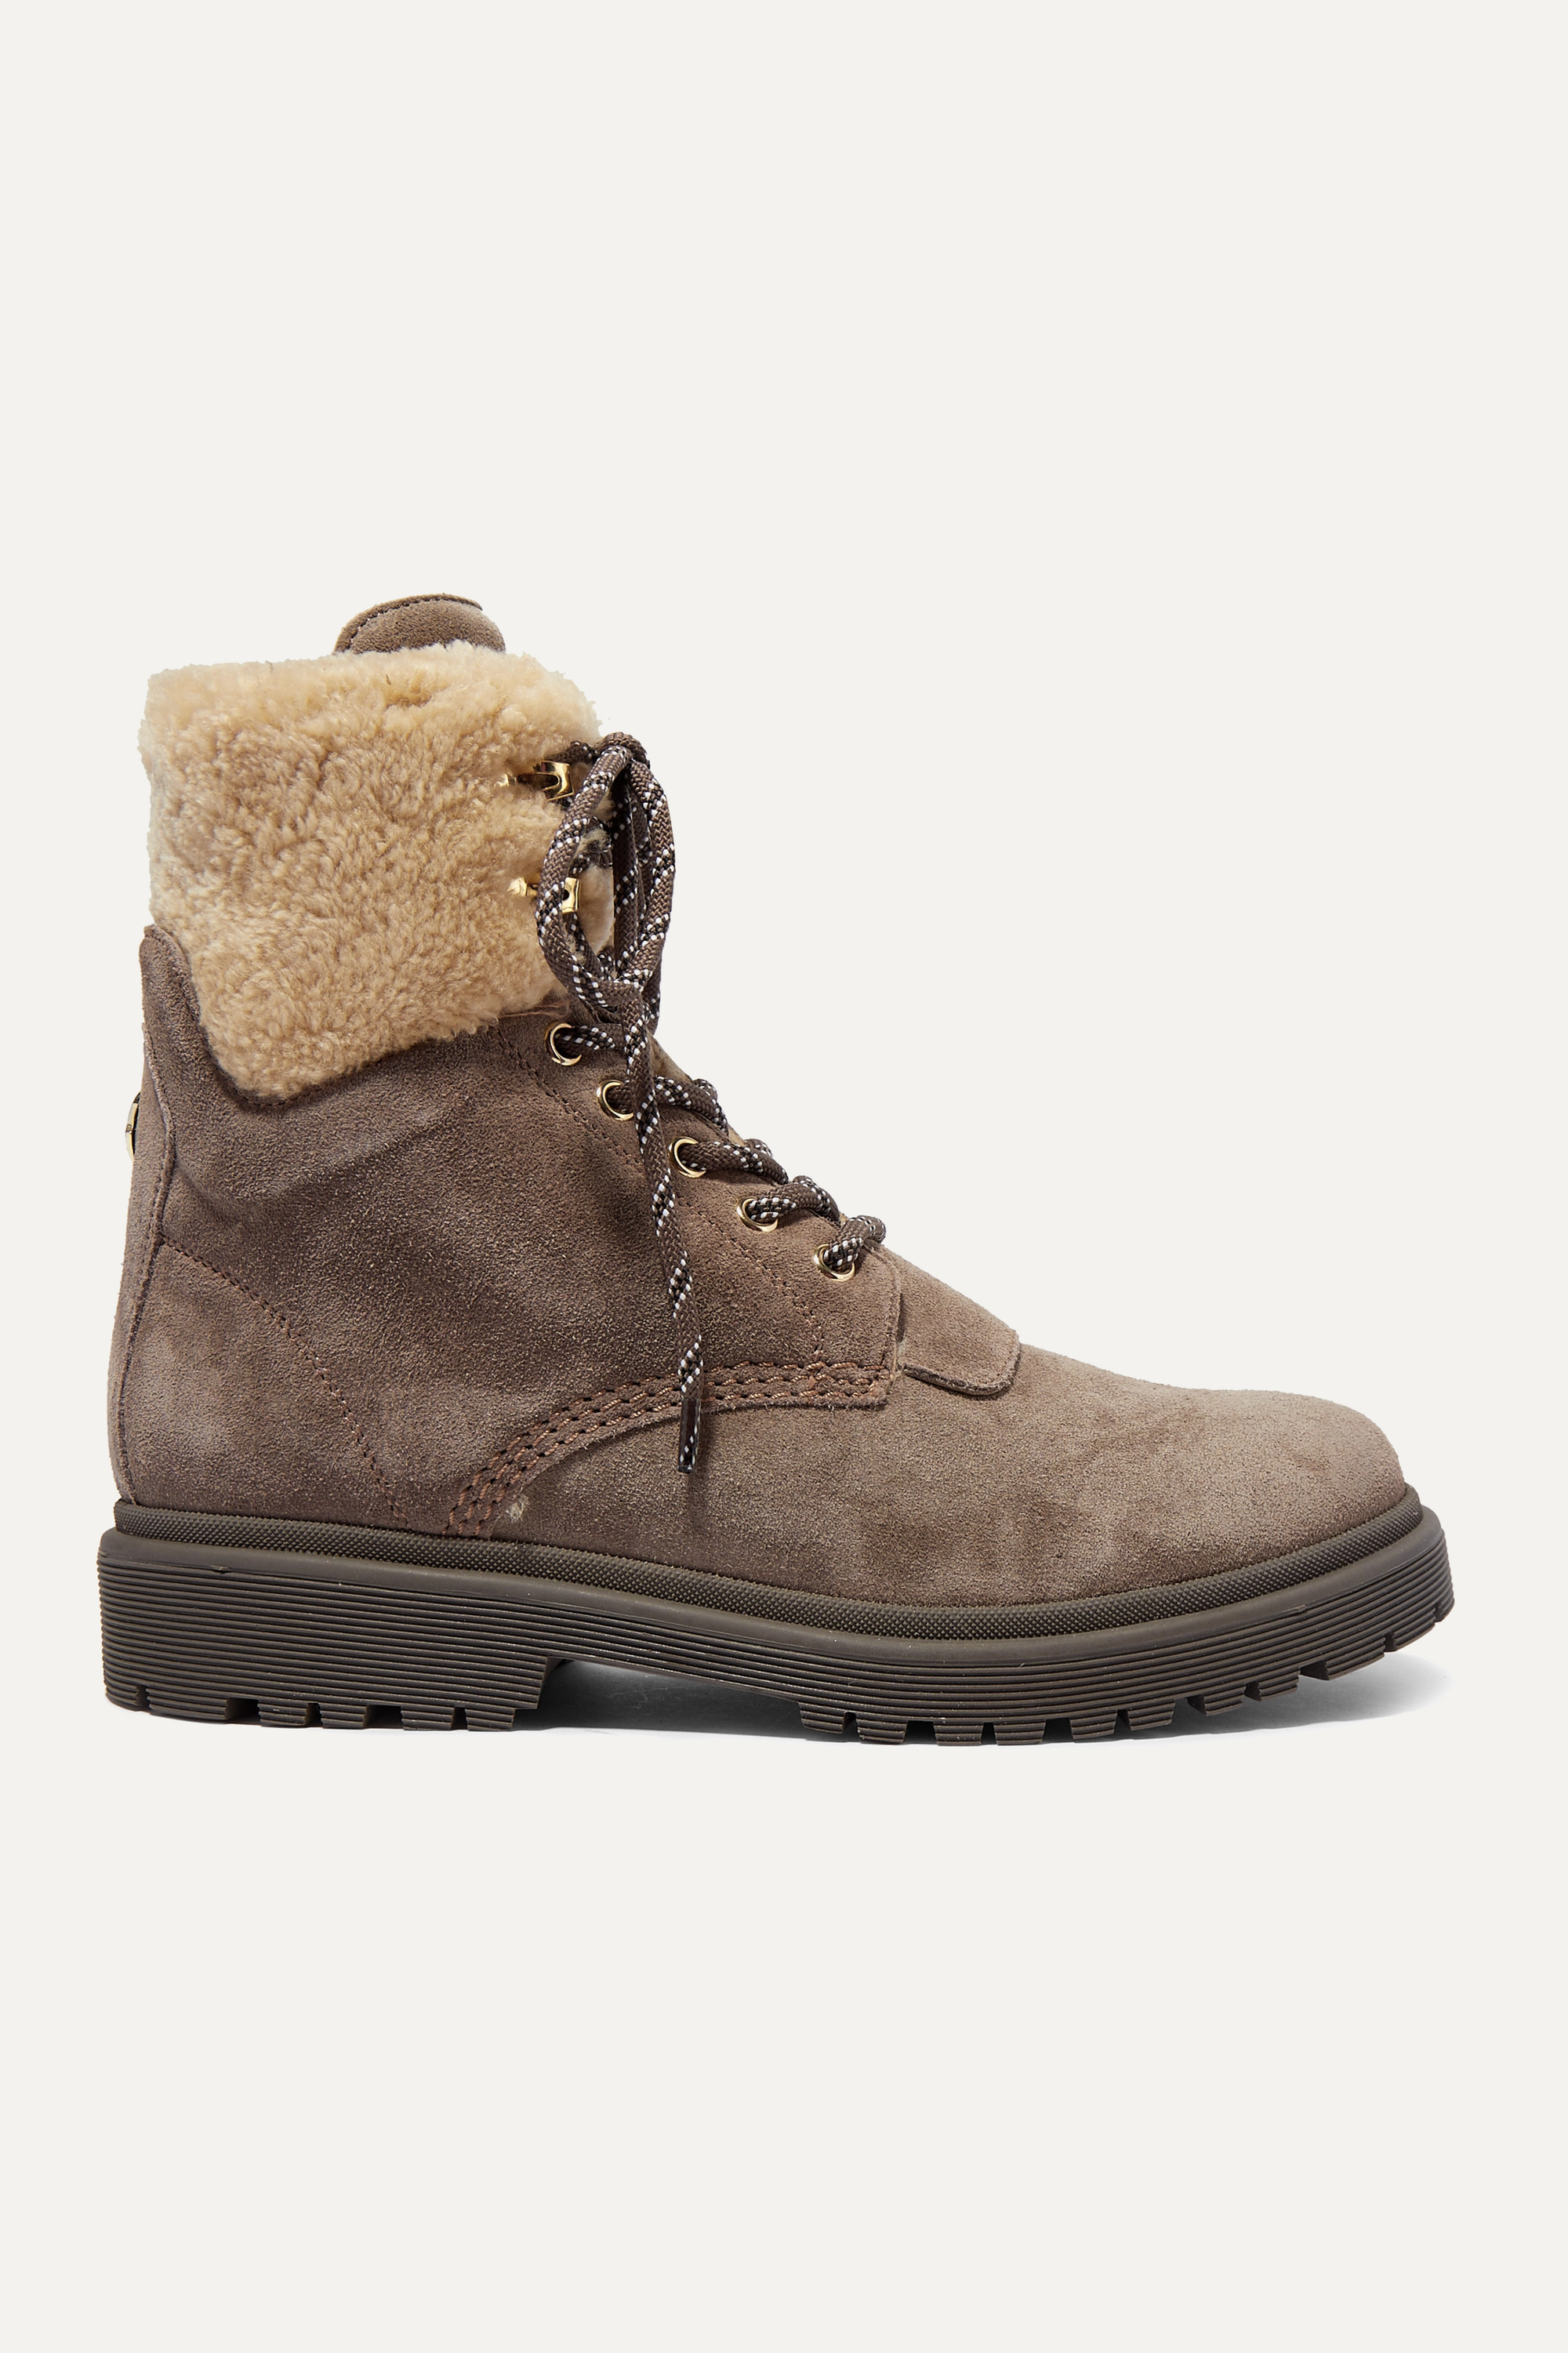 Moncler Patty shearling-trimmed suede ankle boots